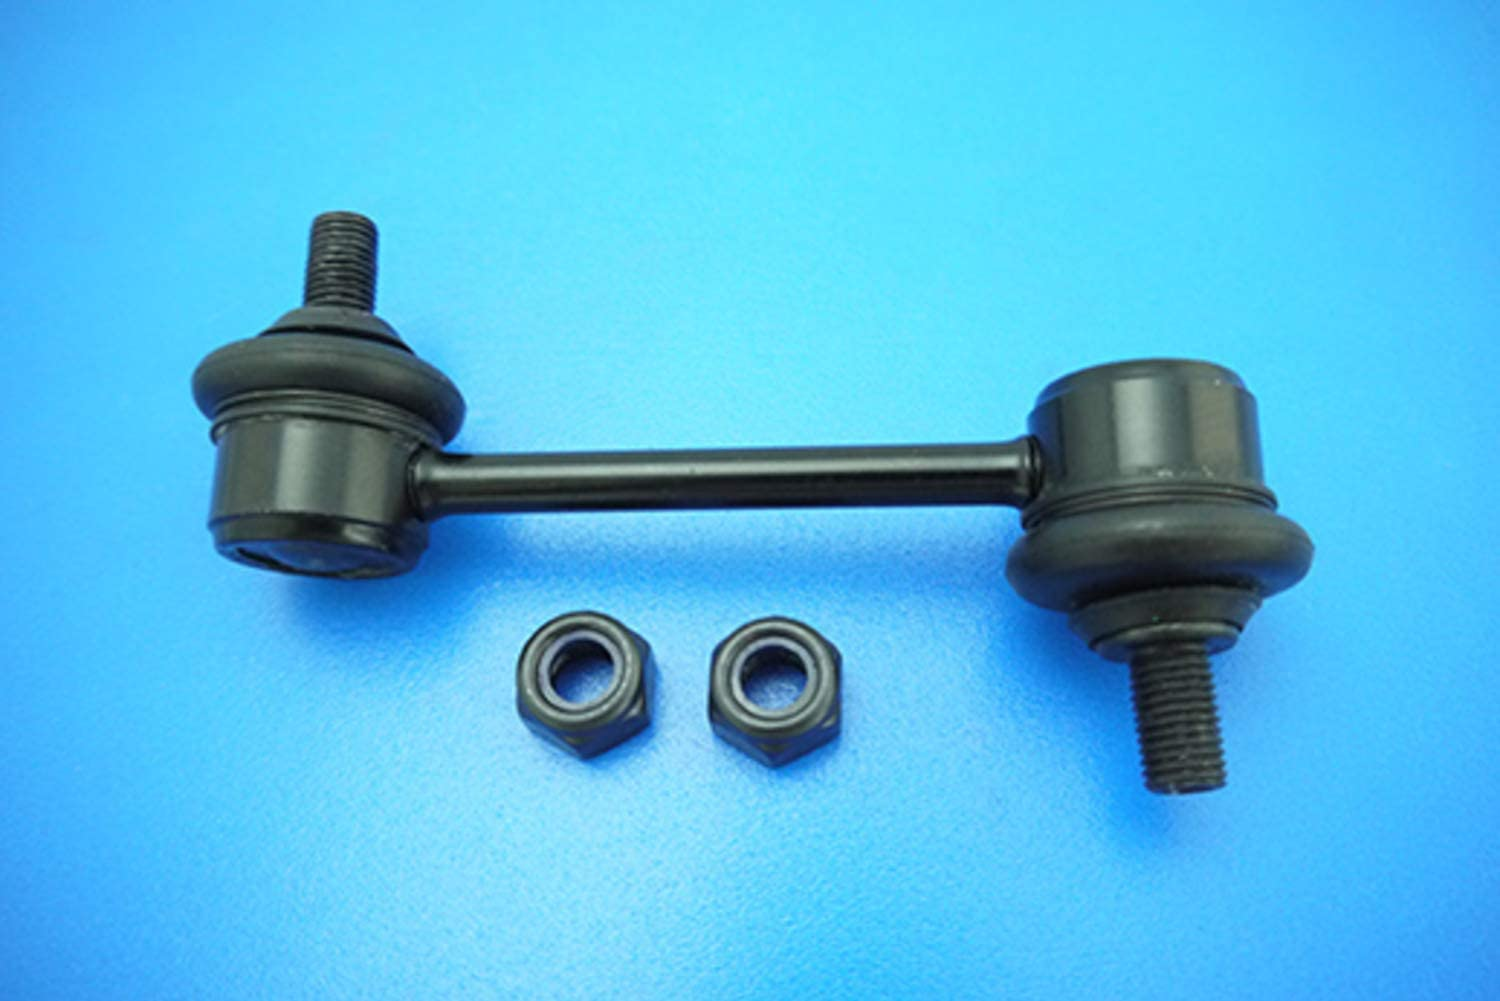 1990 fits Toyota Corolla Rear Suspension Stabilizer Bar Link With Five Years Warranty